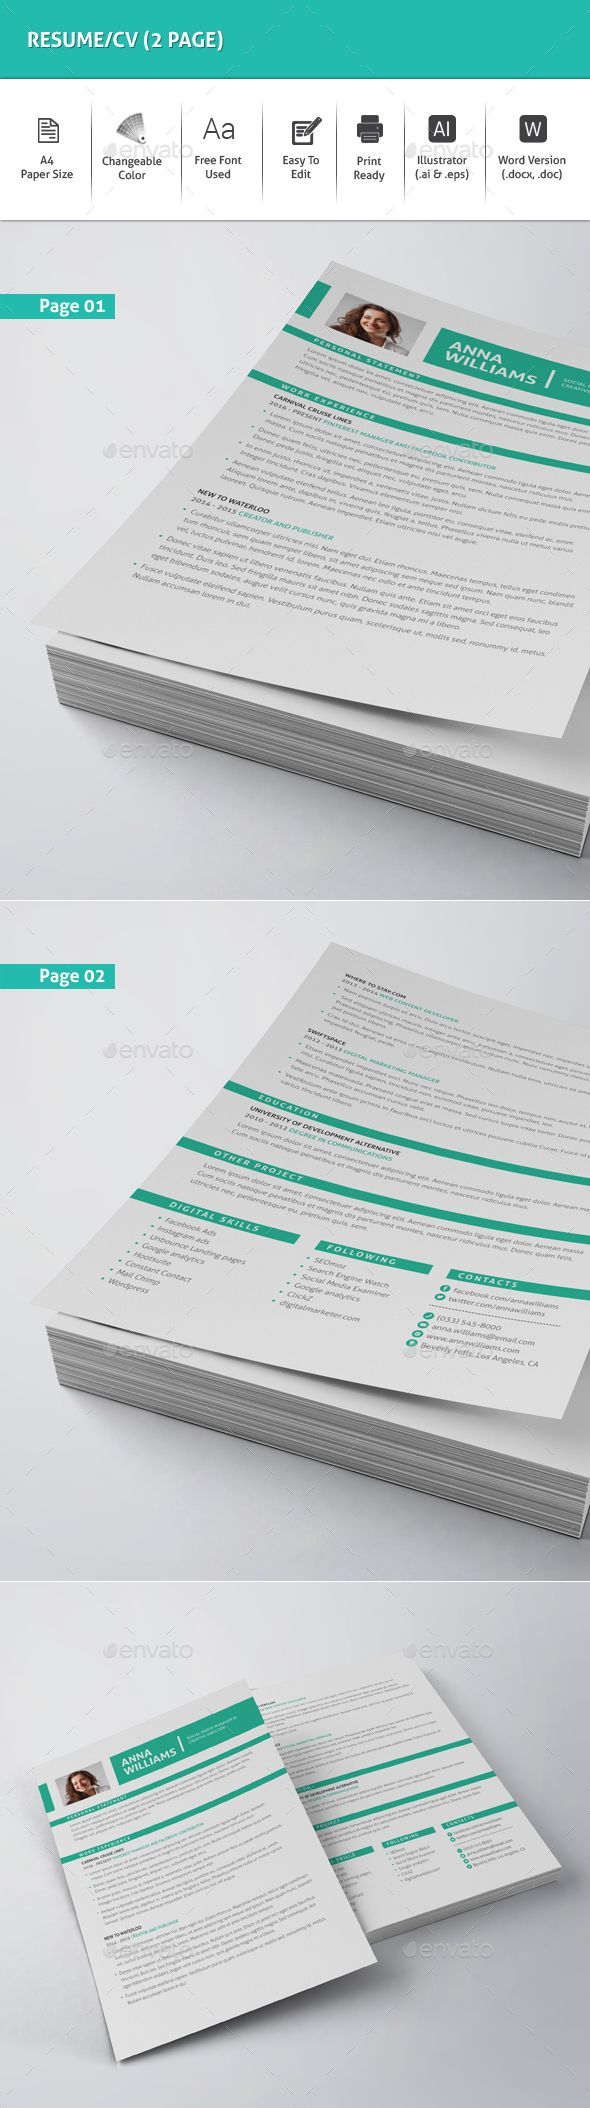 Resume/CV (2 Page) Template Vector EPS, AI Illustrator, MS Word. Download here: http://graphicriver.net/item/resumecv-2-page/16083321?ref=ksioks